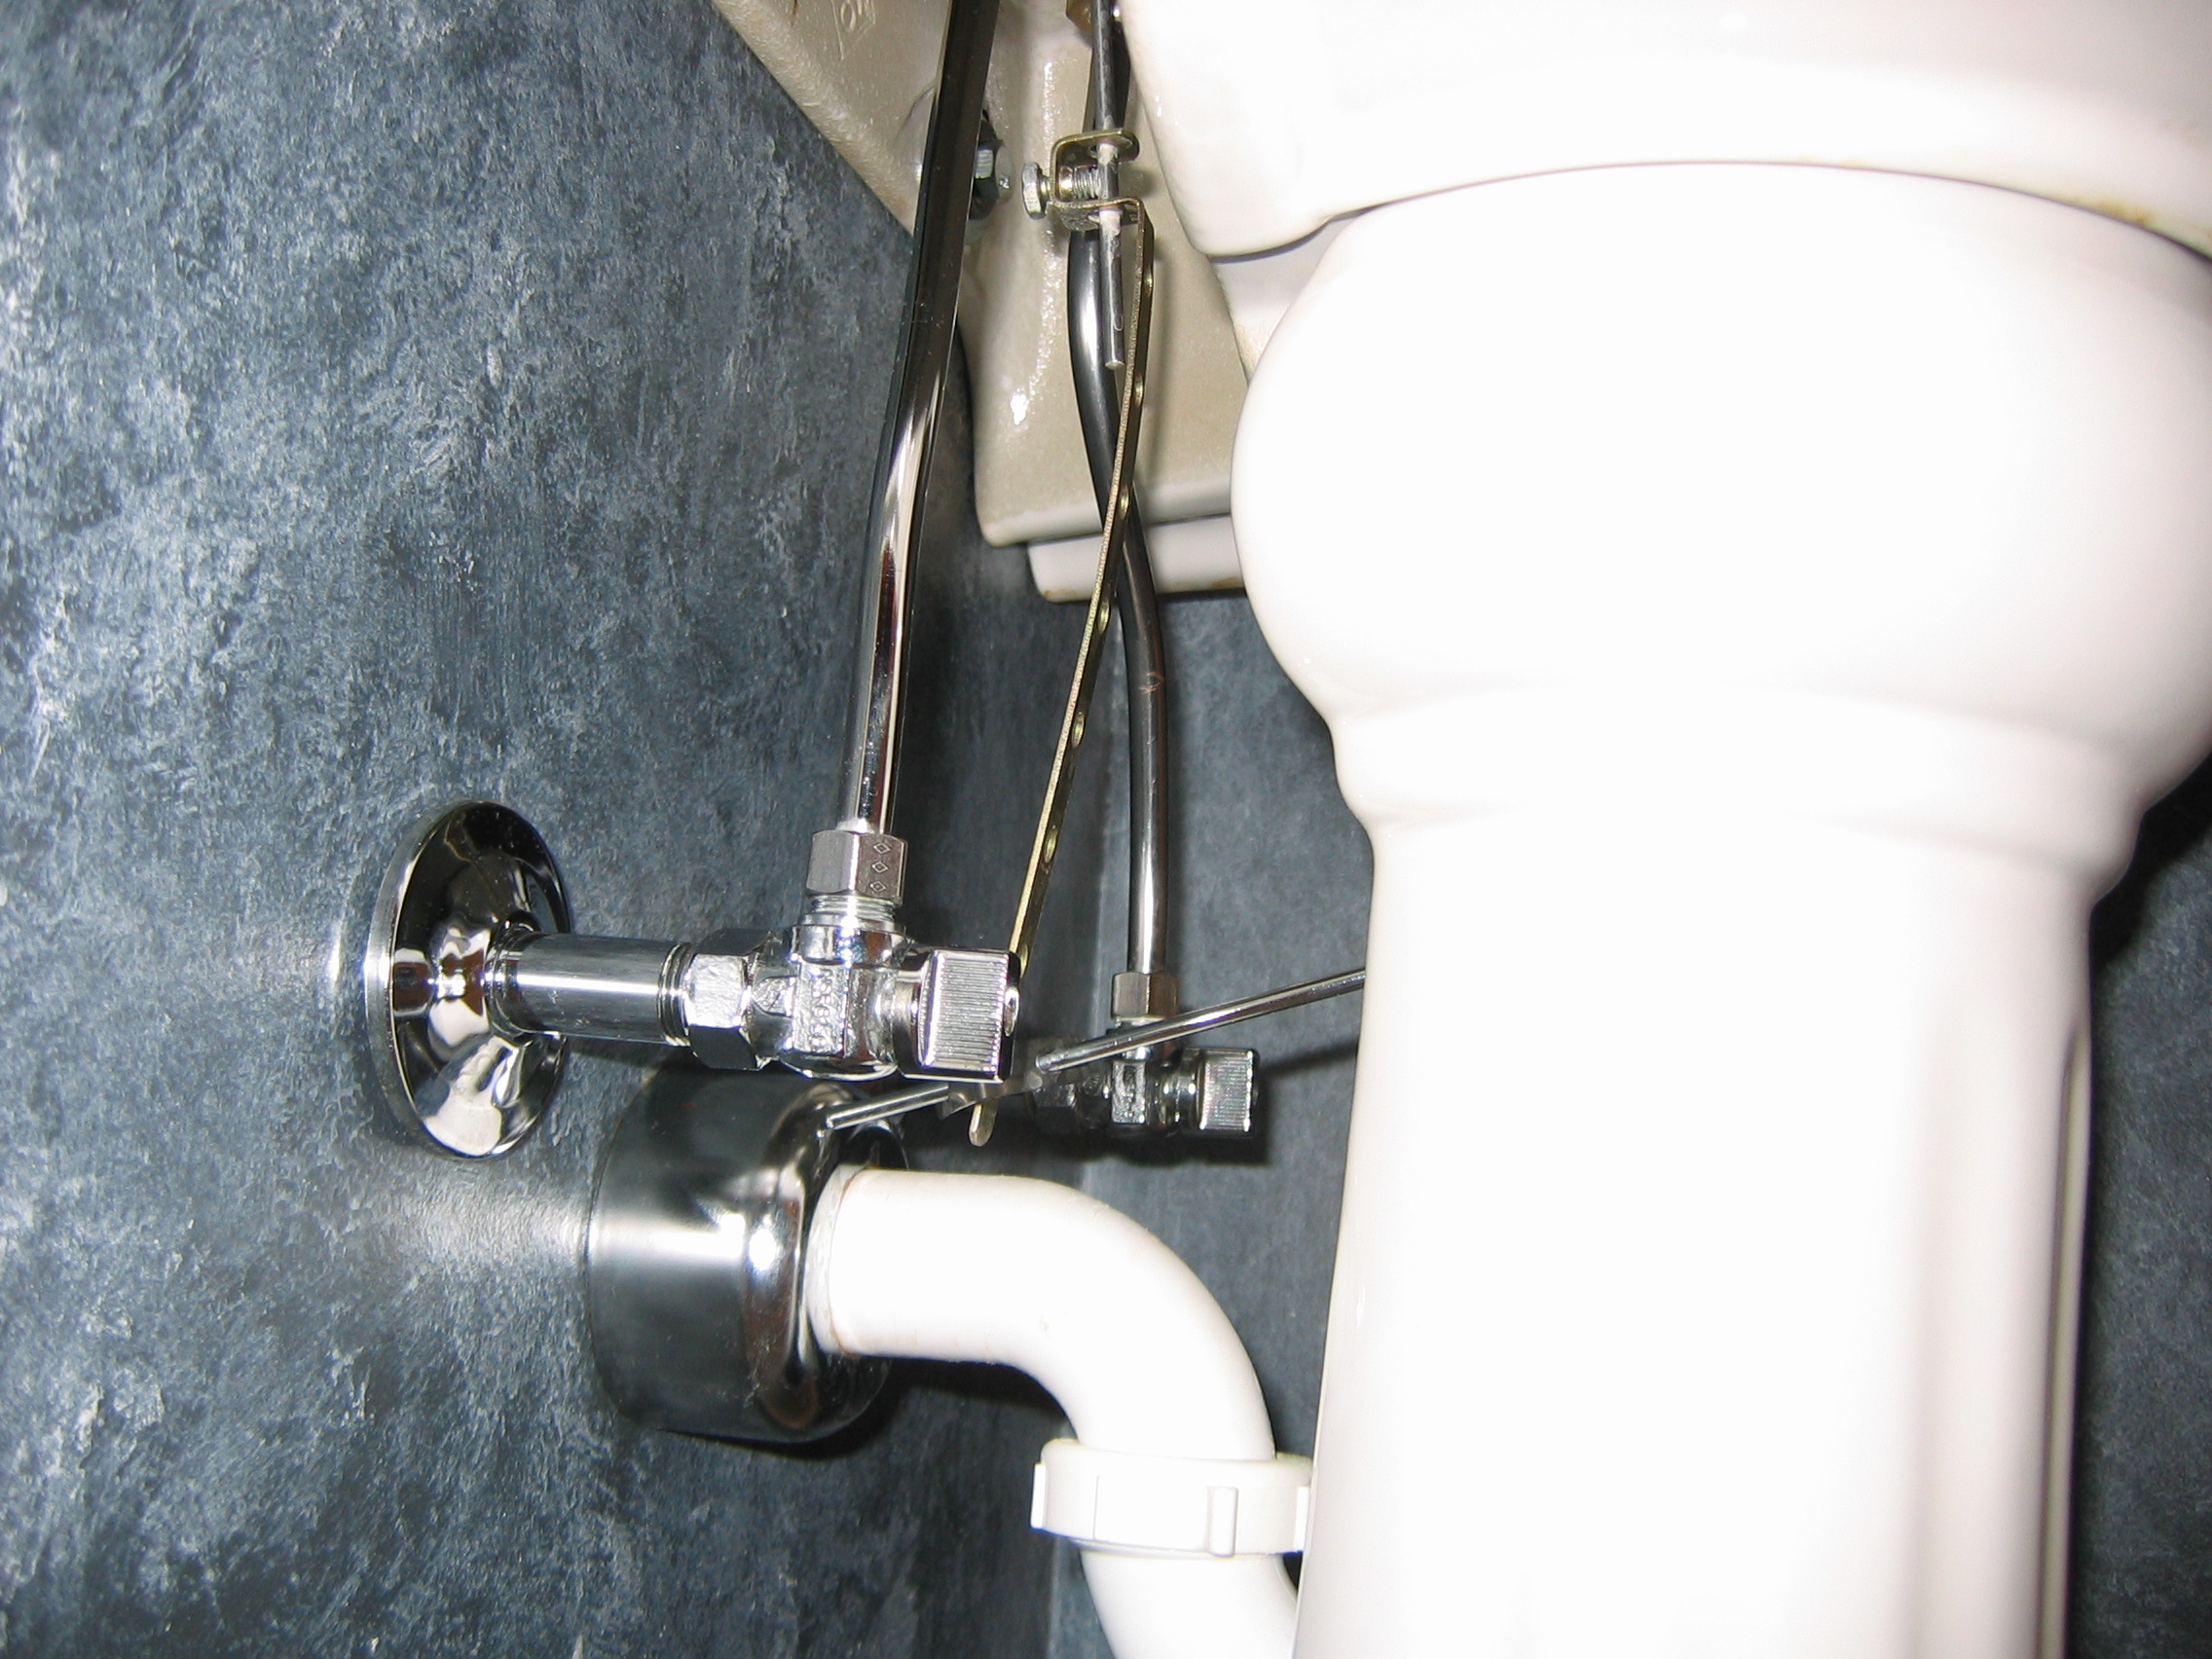 turn handle plumbing blue valve brass bite nickel product with plated sb ball valves shark isolate quarter lever water